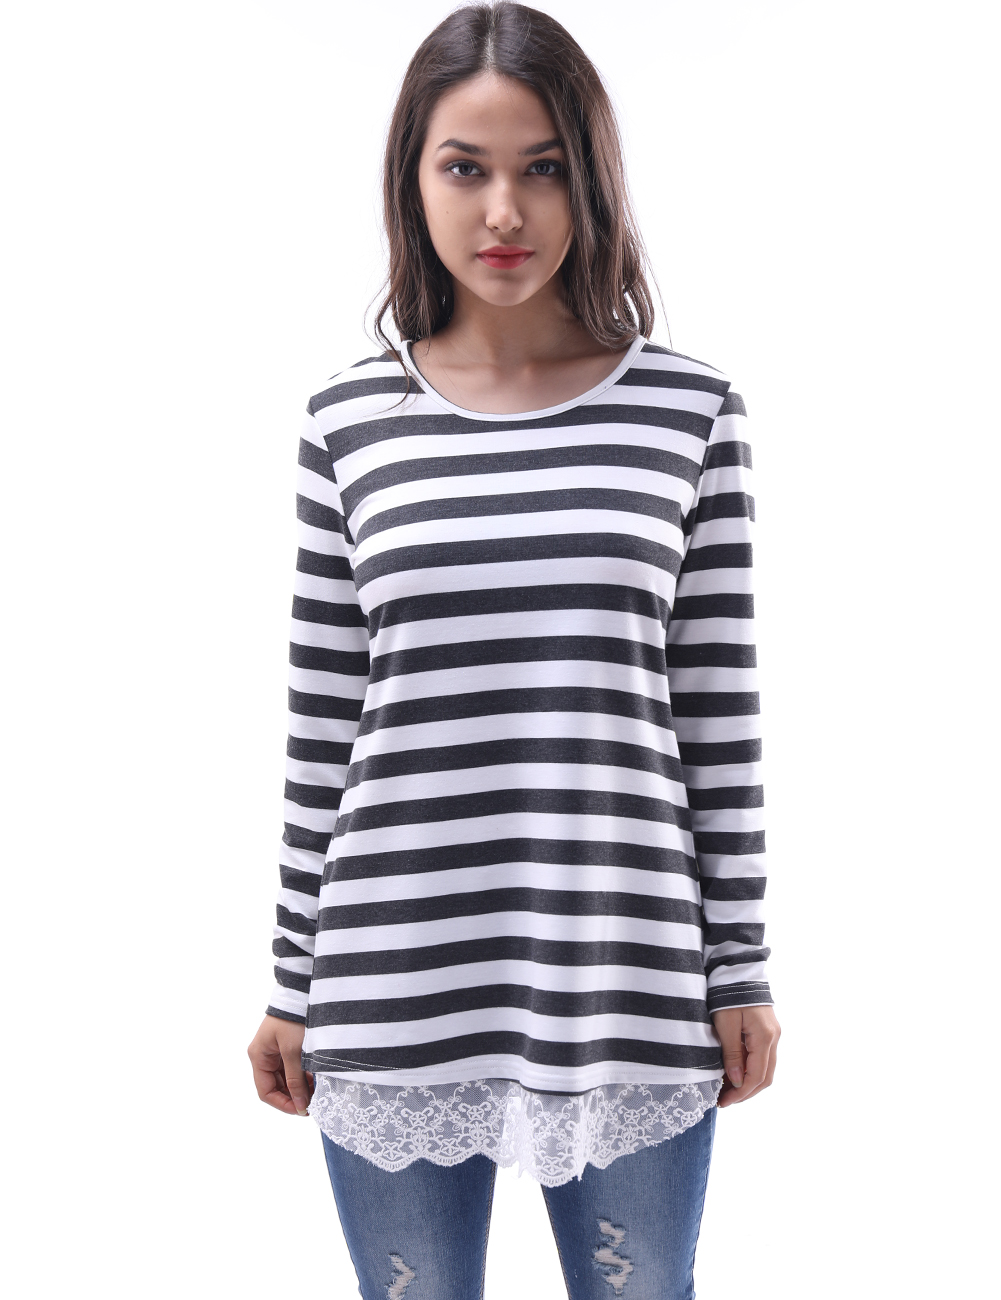 2018 Black And White Striped Blouse Shirts Knitted Women Tops Fashion Elegant Lace Long Sleeve Knitwear Female